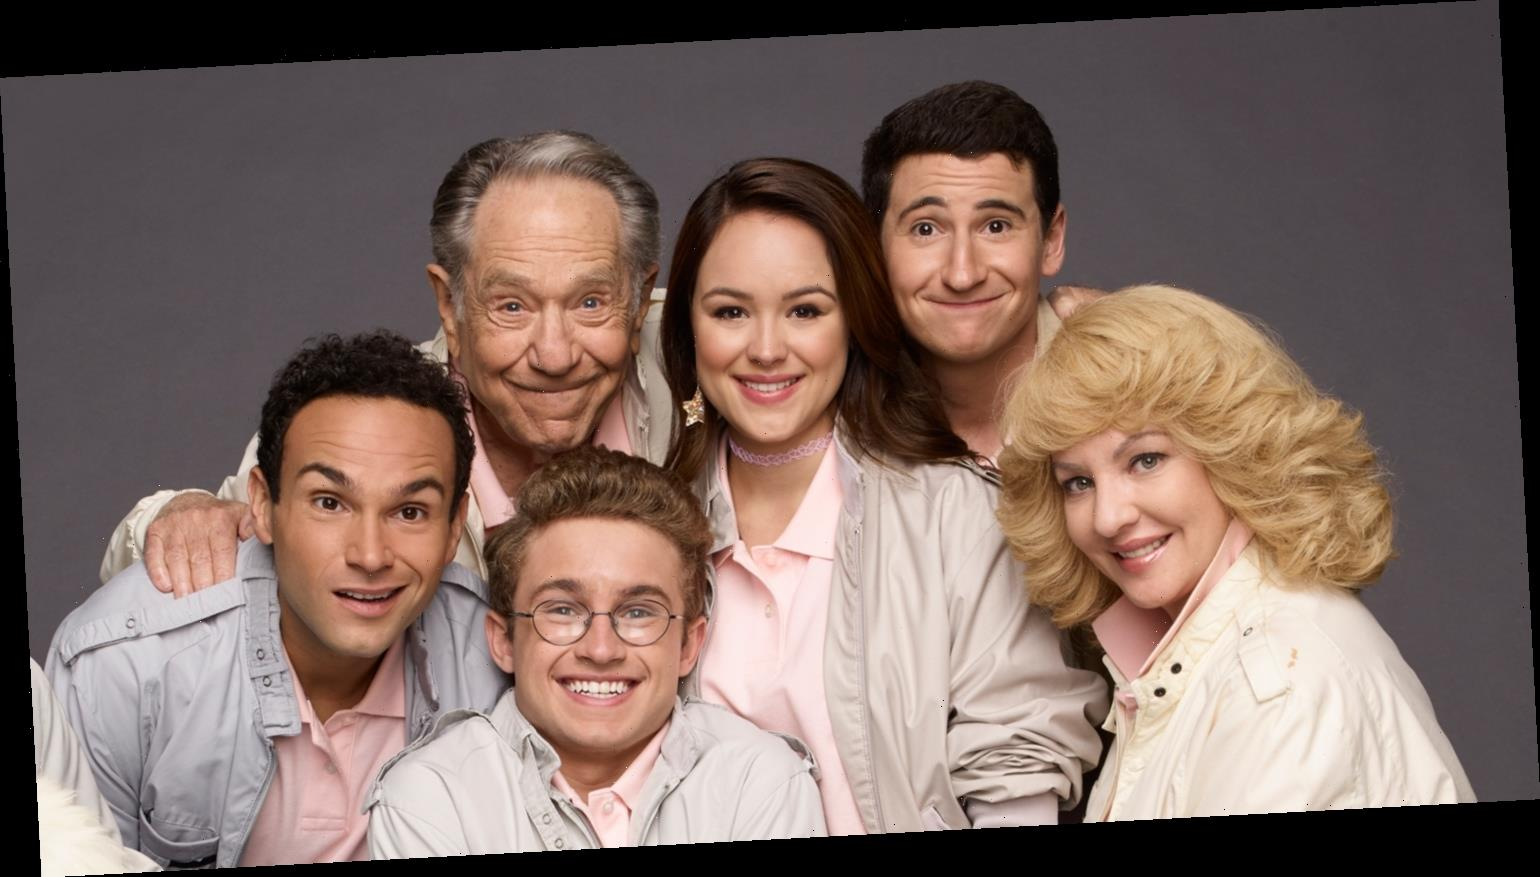 Sean Giambrone, Hayley Orrantia & More 'The Goldbergs' Stars Mourn The Loss of George Segal